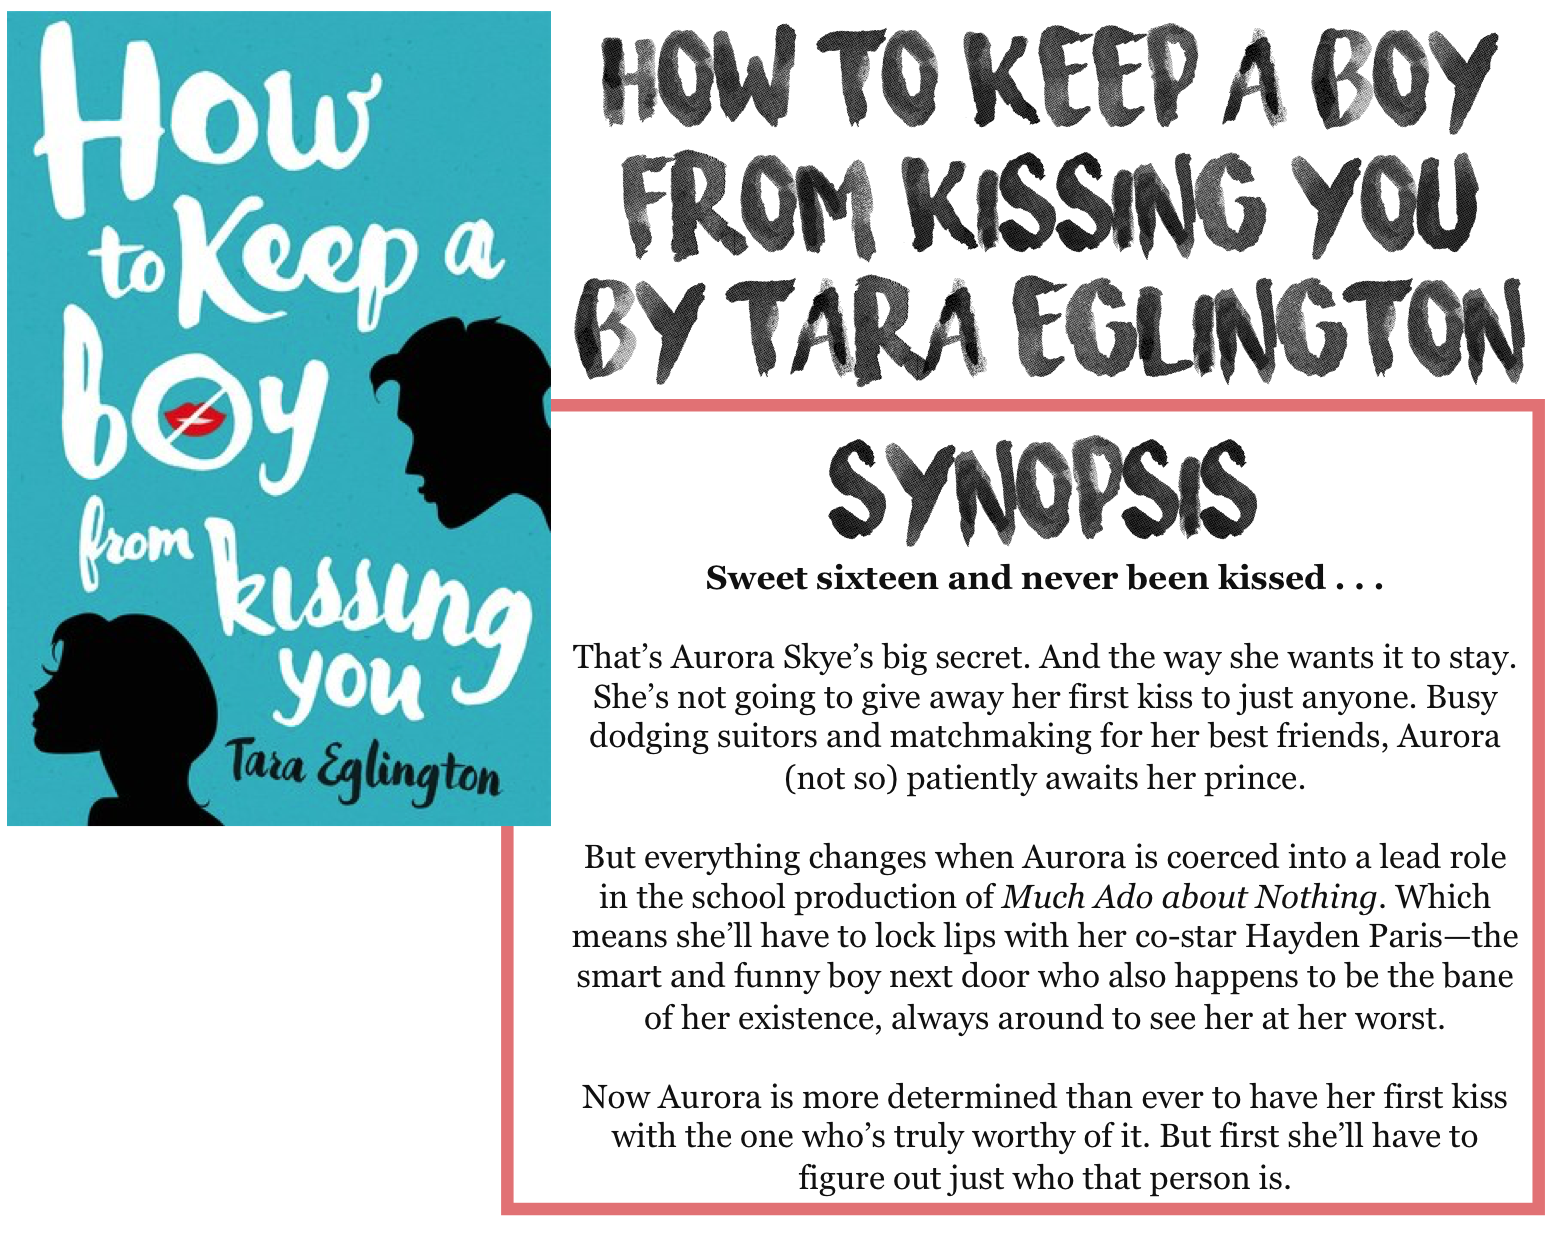 How to start kissing a boy